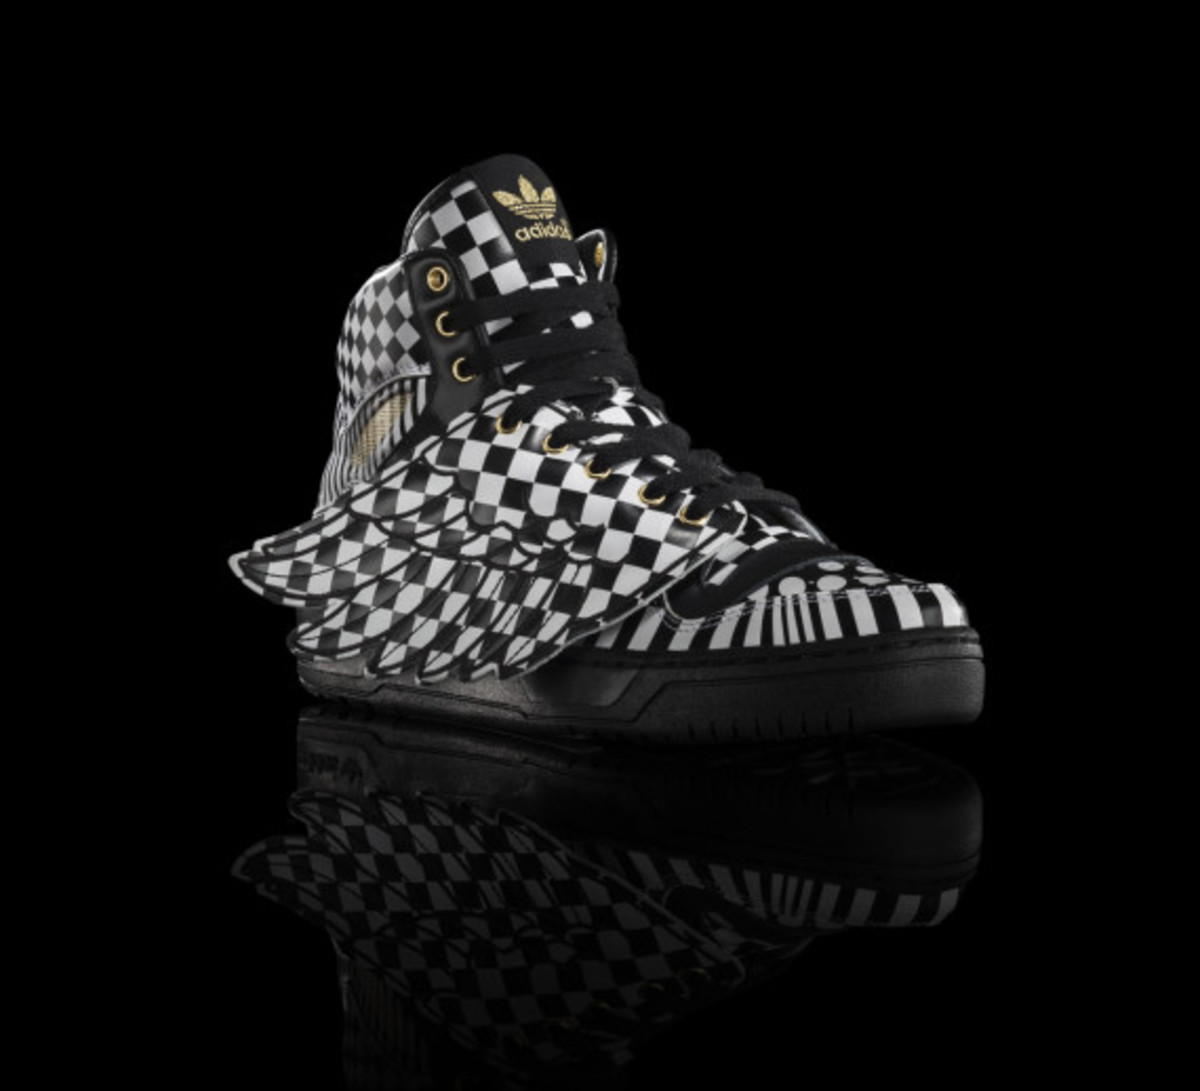 adidas-originals-by-jeremy-scott-fall-winter-2013-footwear-collection-22